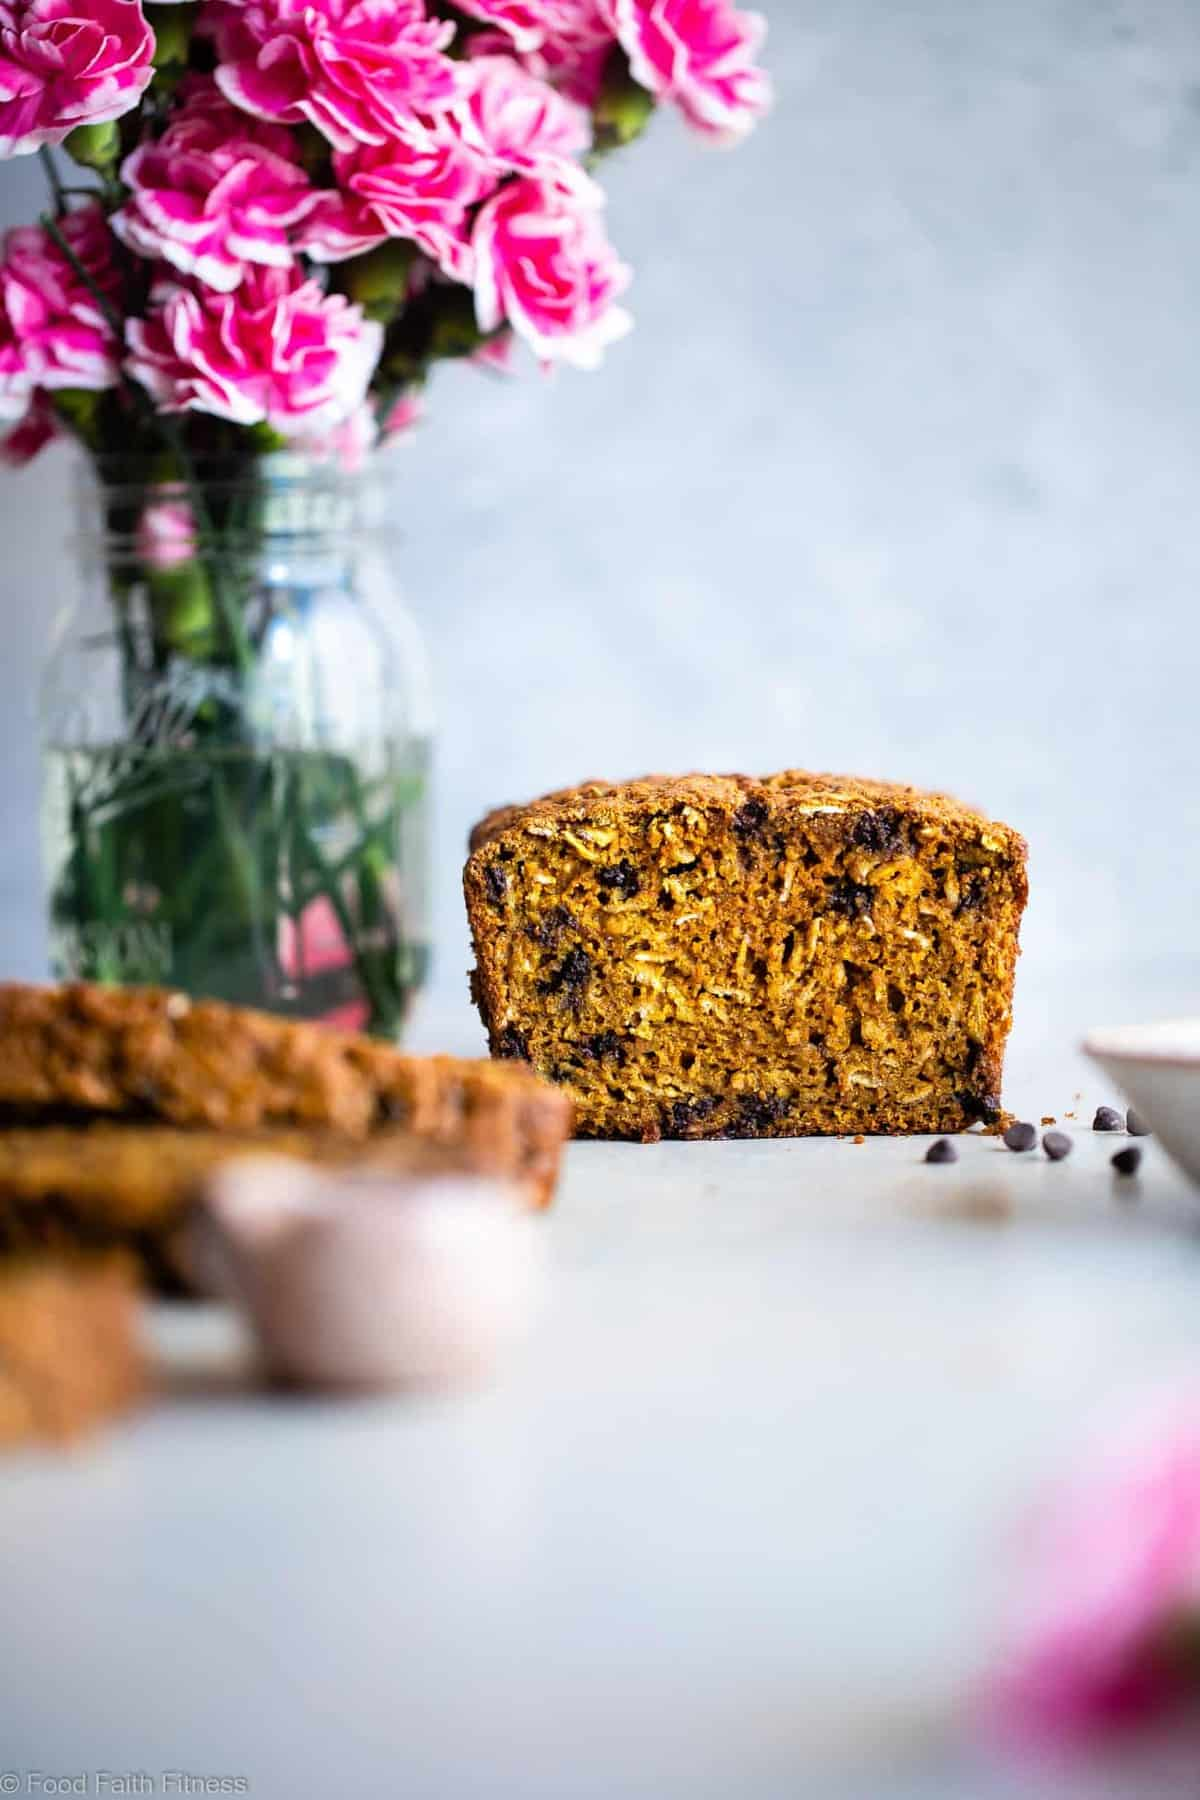 Gluten Free Turmeric Chocolate Chip Bread - This healthy turmeric bread is spicy-sweet and has melty chocolate chips! A gluten free and dairy free breakfast or snack that is anti-inflammatory! | #Foodfaithfitness |